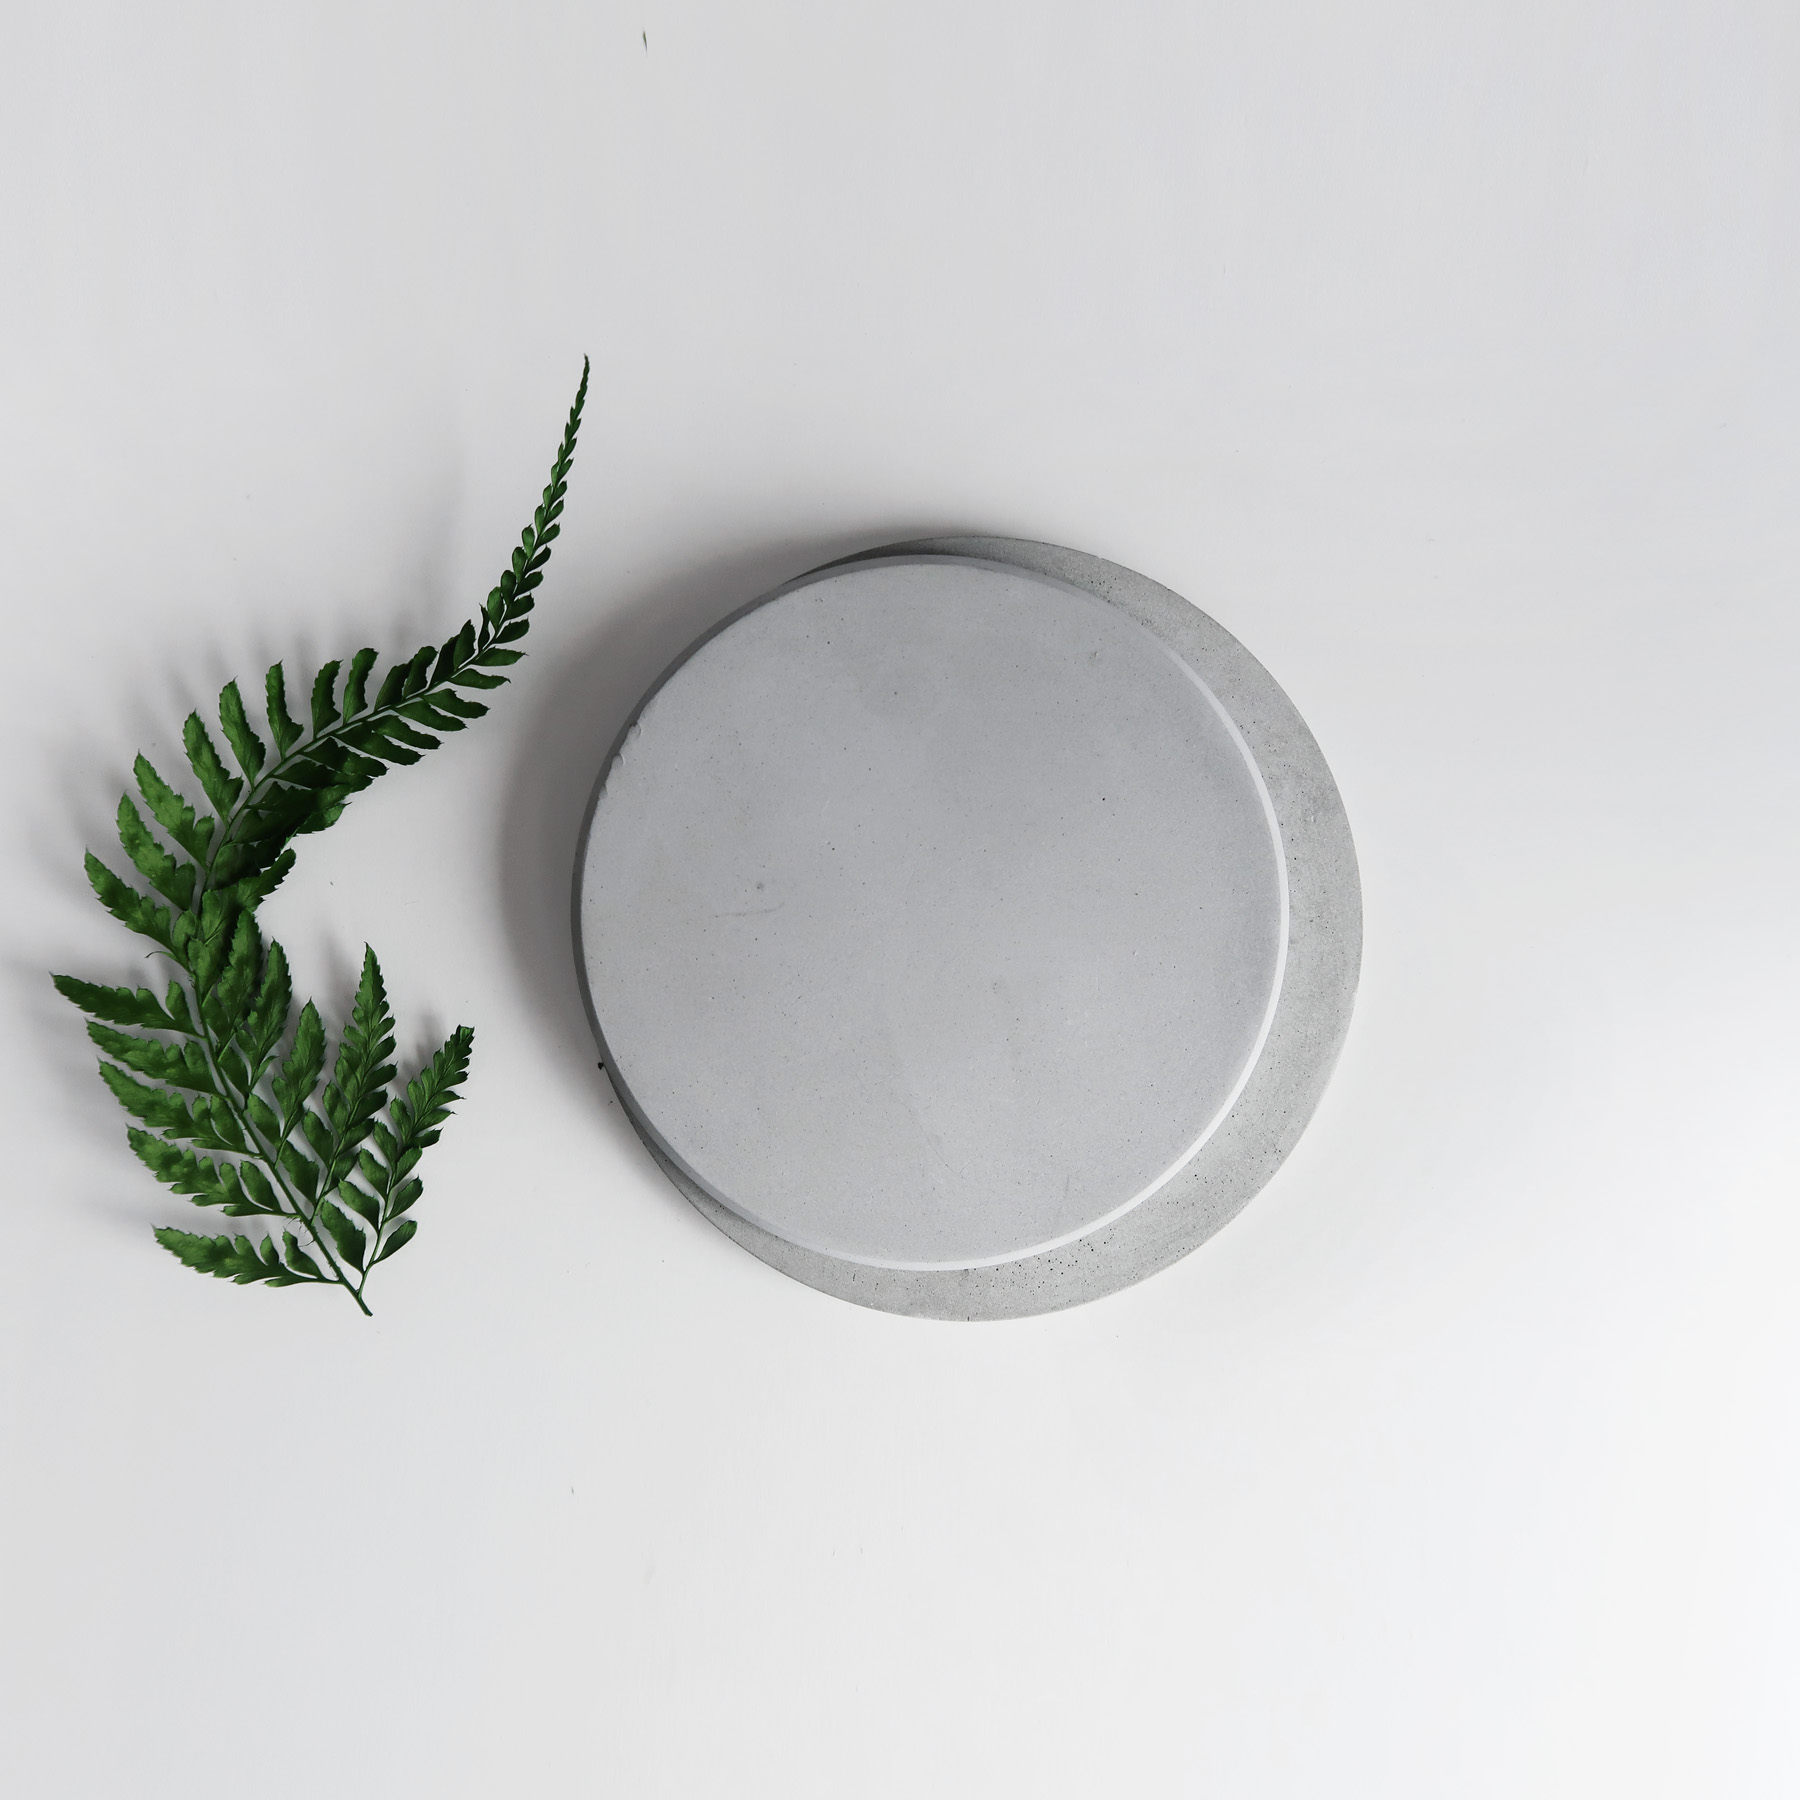 PURE MOON 月亮灰質地水泥吸水杯墊・飾品盤 / Concrete absorbent coaster, Jewelry dish